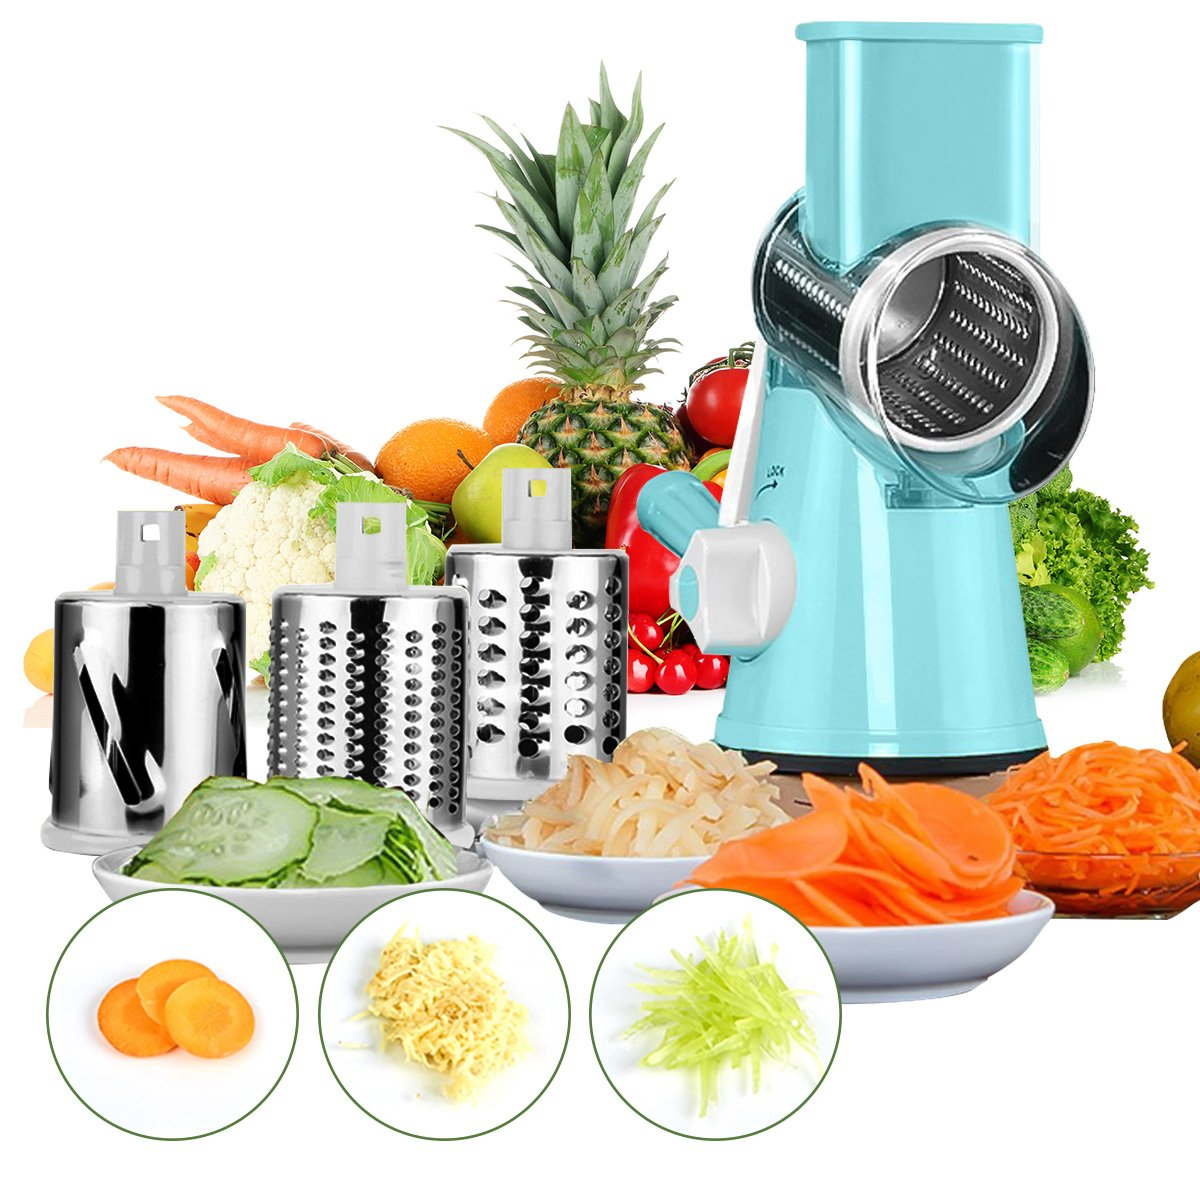 Baban Manual Multifunctional Mandolin/Slicer/Spiraliser/Cutter/Grater Tool for Fruit, Vegetables, Cheese blue Ovemiliya